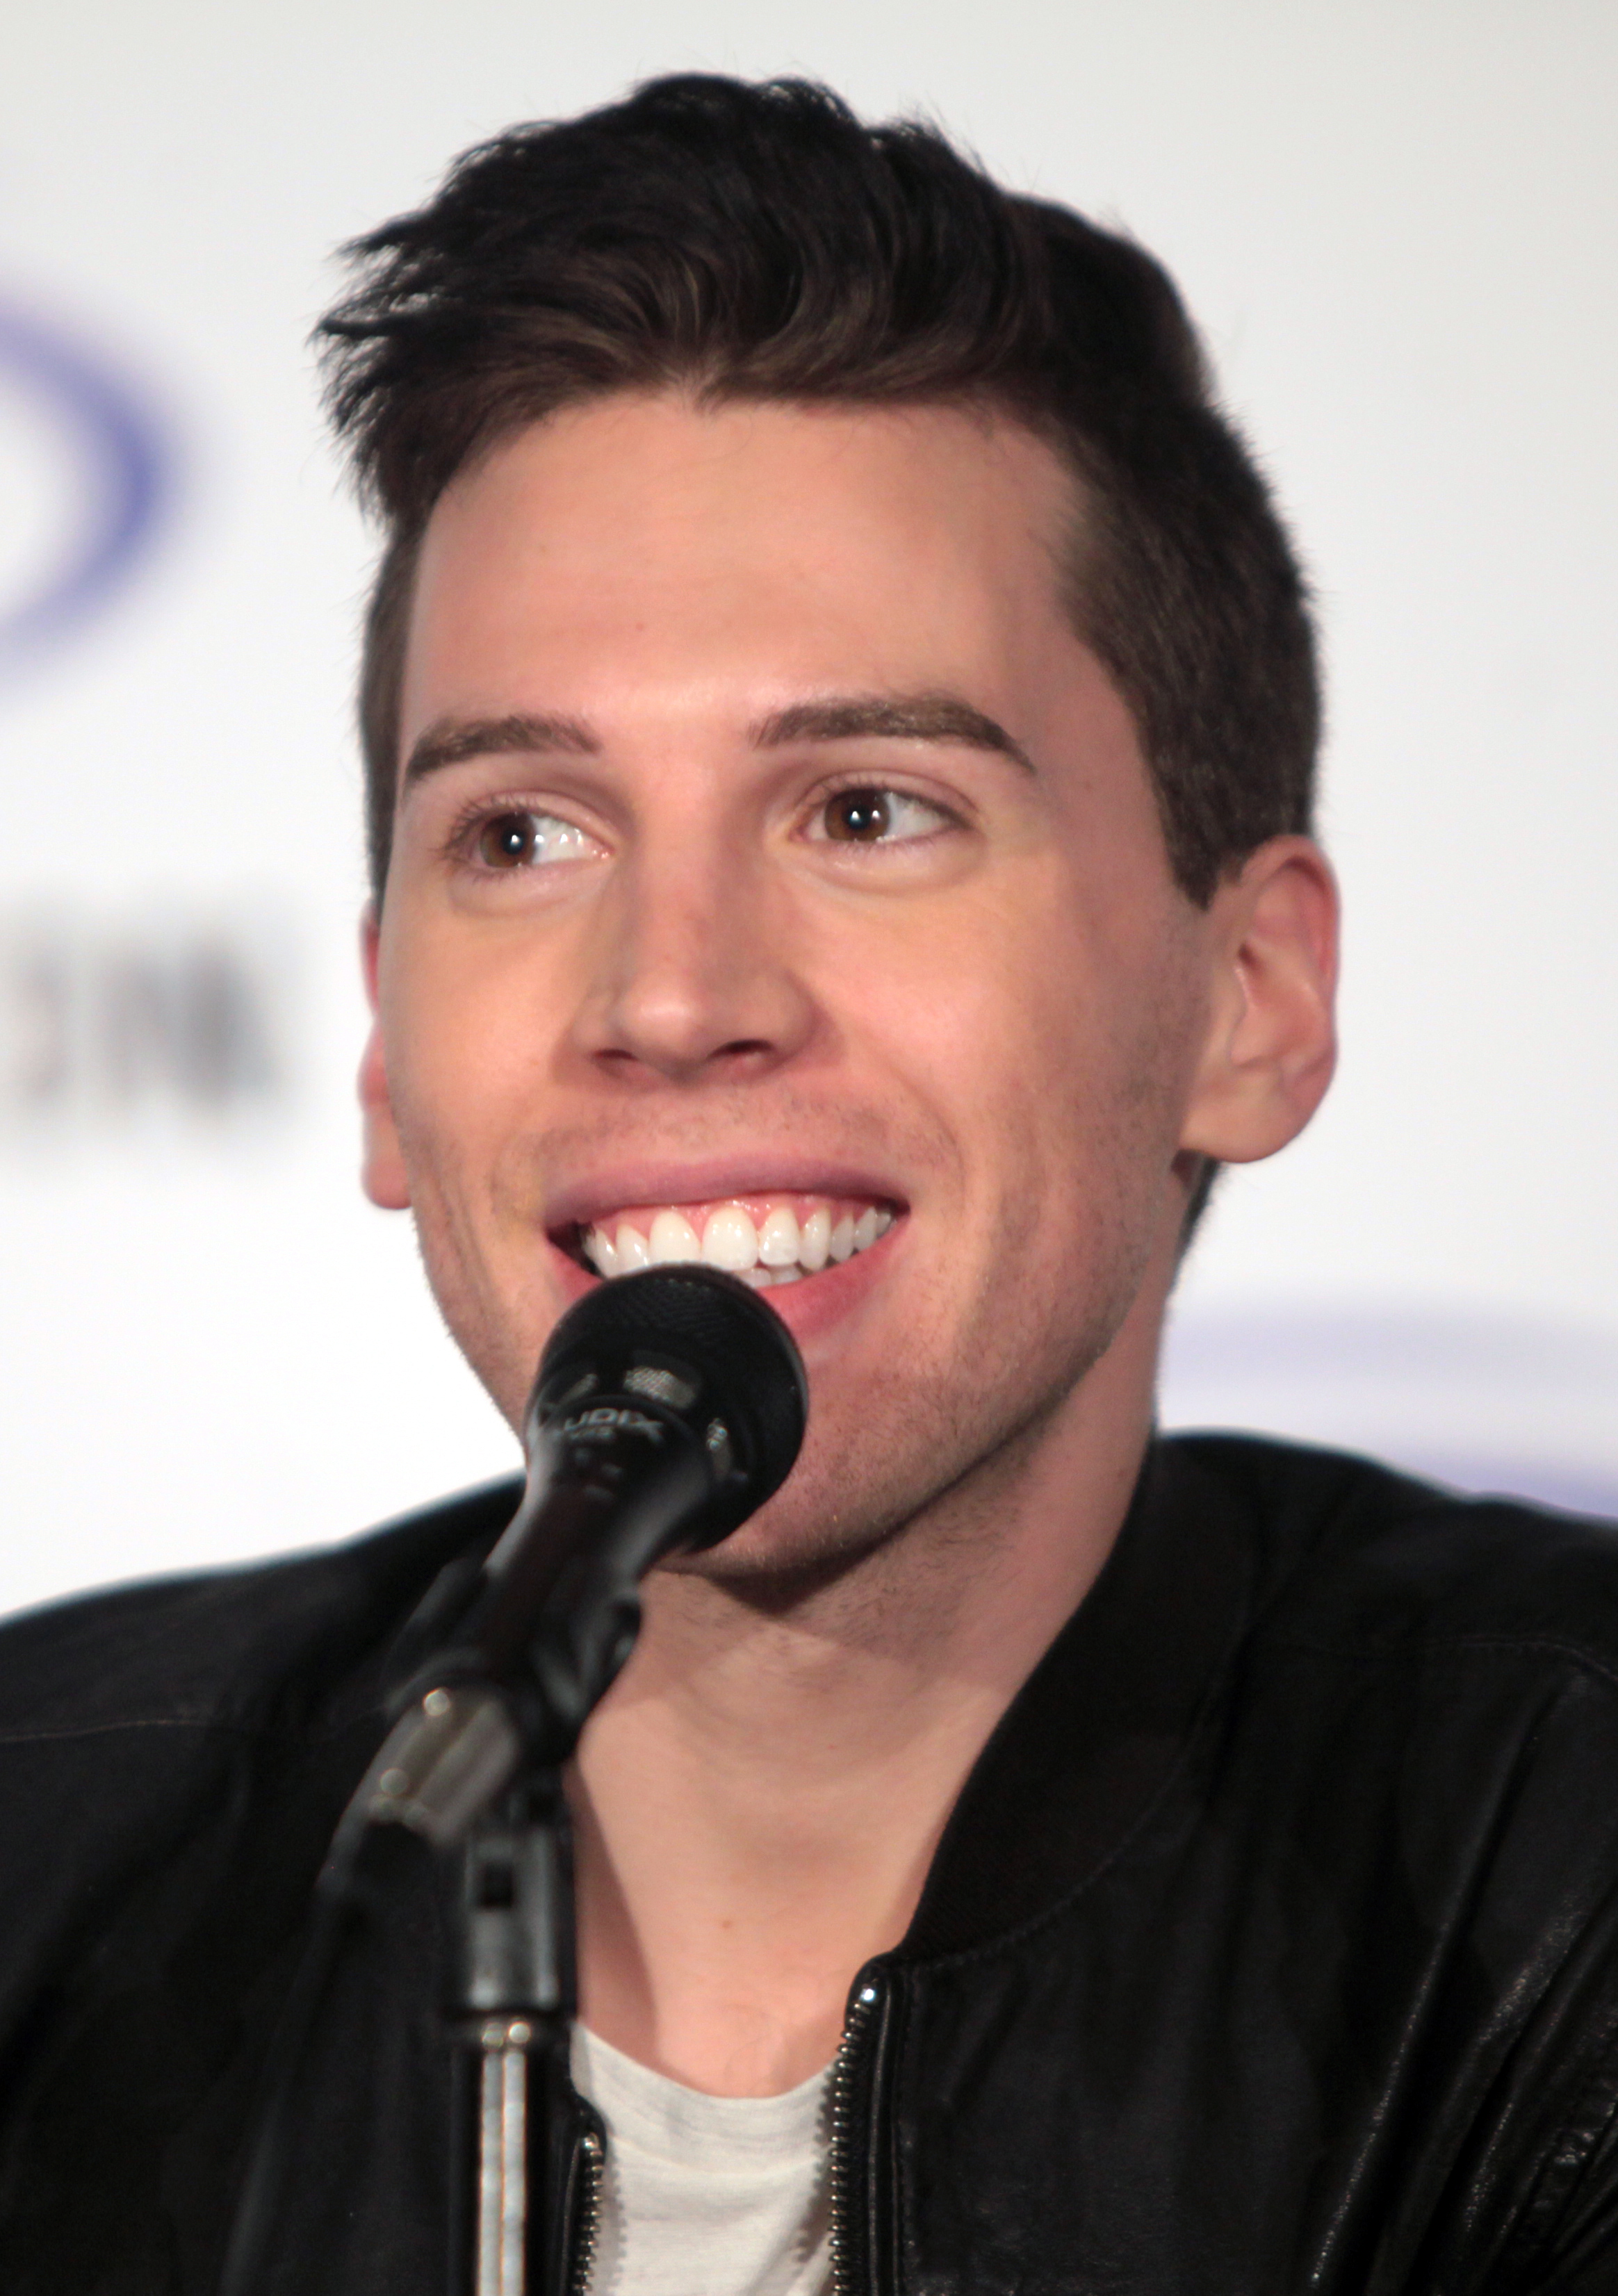 The 28-year old son of father (?) and mother(?) Jordan Gavaris in 2018 photo. Jordan Gavaris earned a  million dollar salary - leaving the net worth at 1 million in 2018